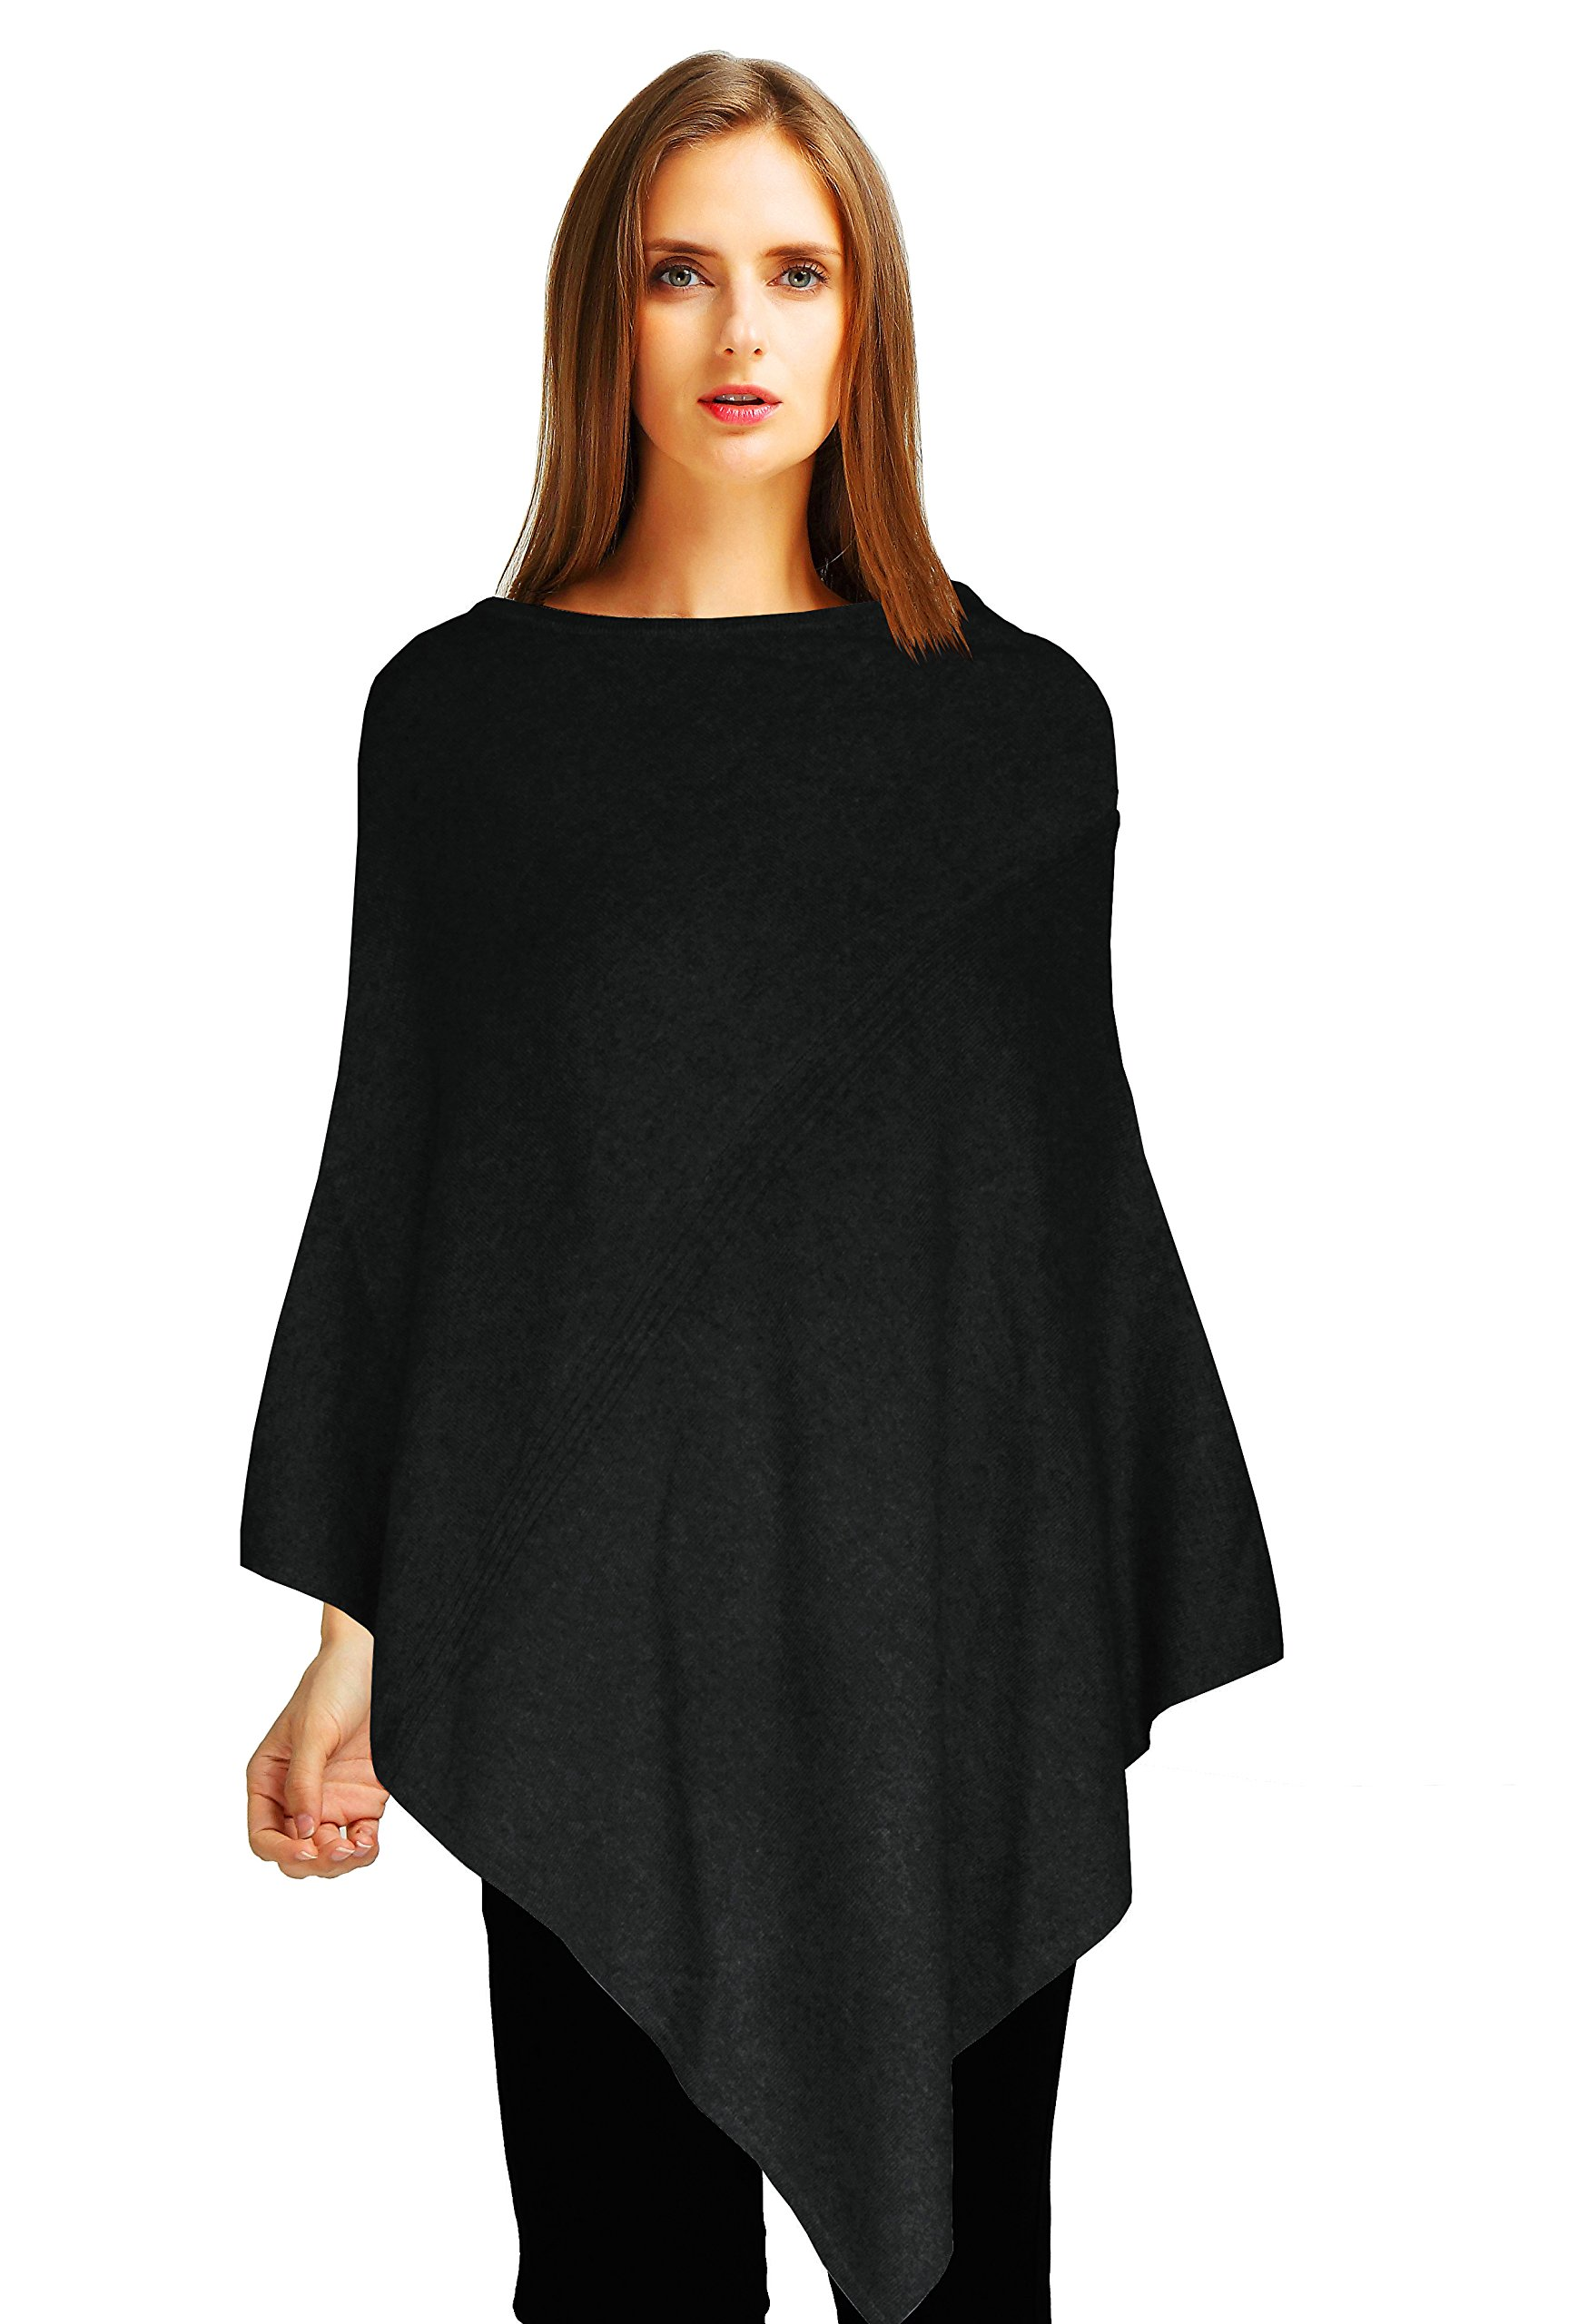 Ellettee, 96% Pure Cashmere Knit Pullover Poncho Dress Topper Travel Wrap Shawl Cape Sweater Cloak (Dimgray)